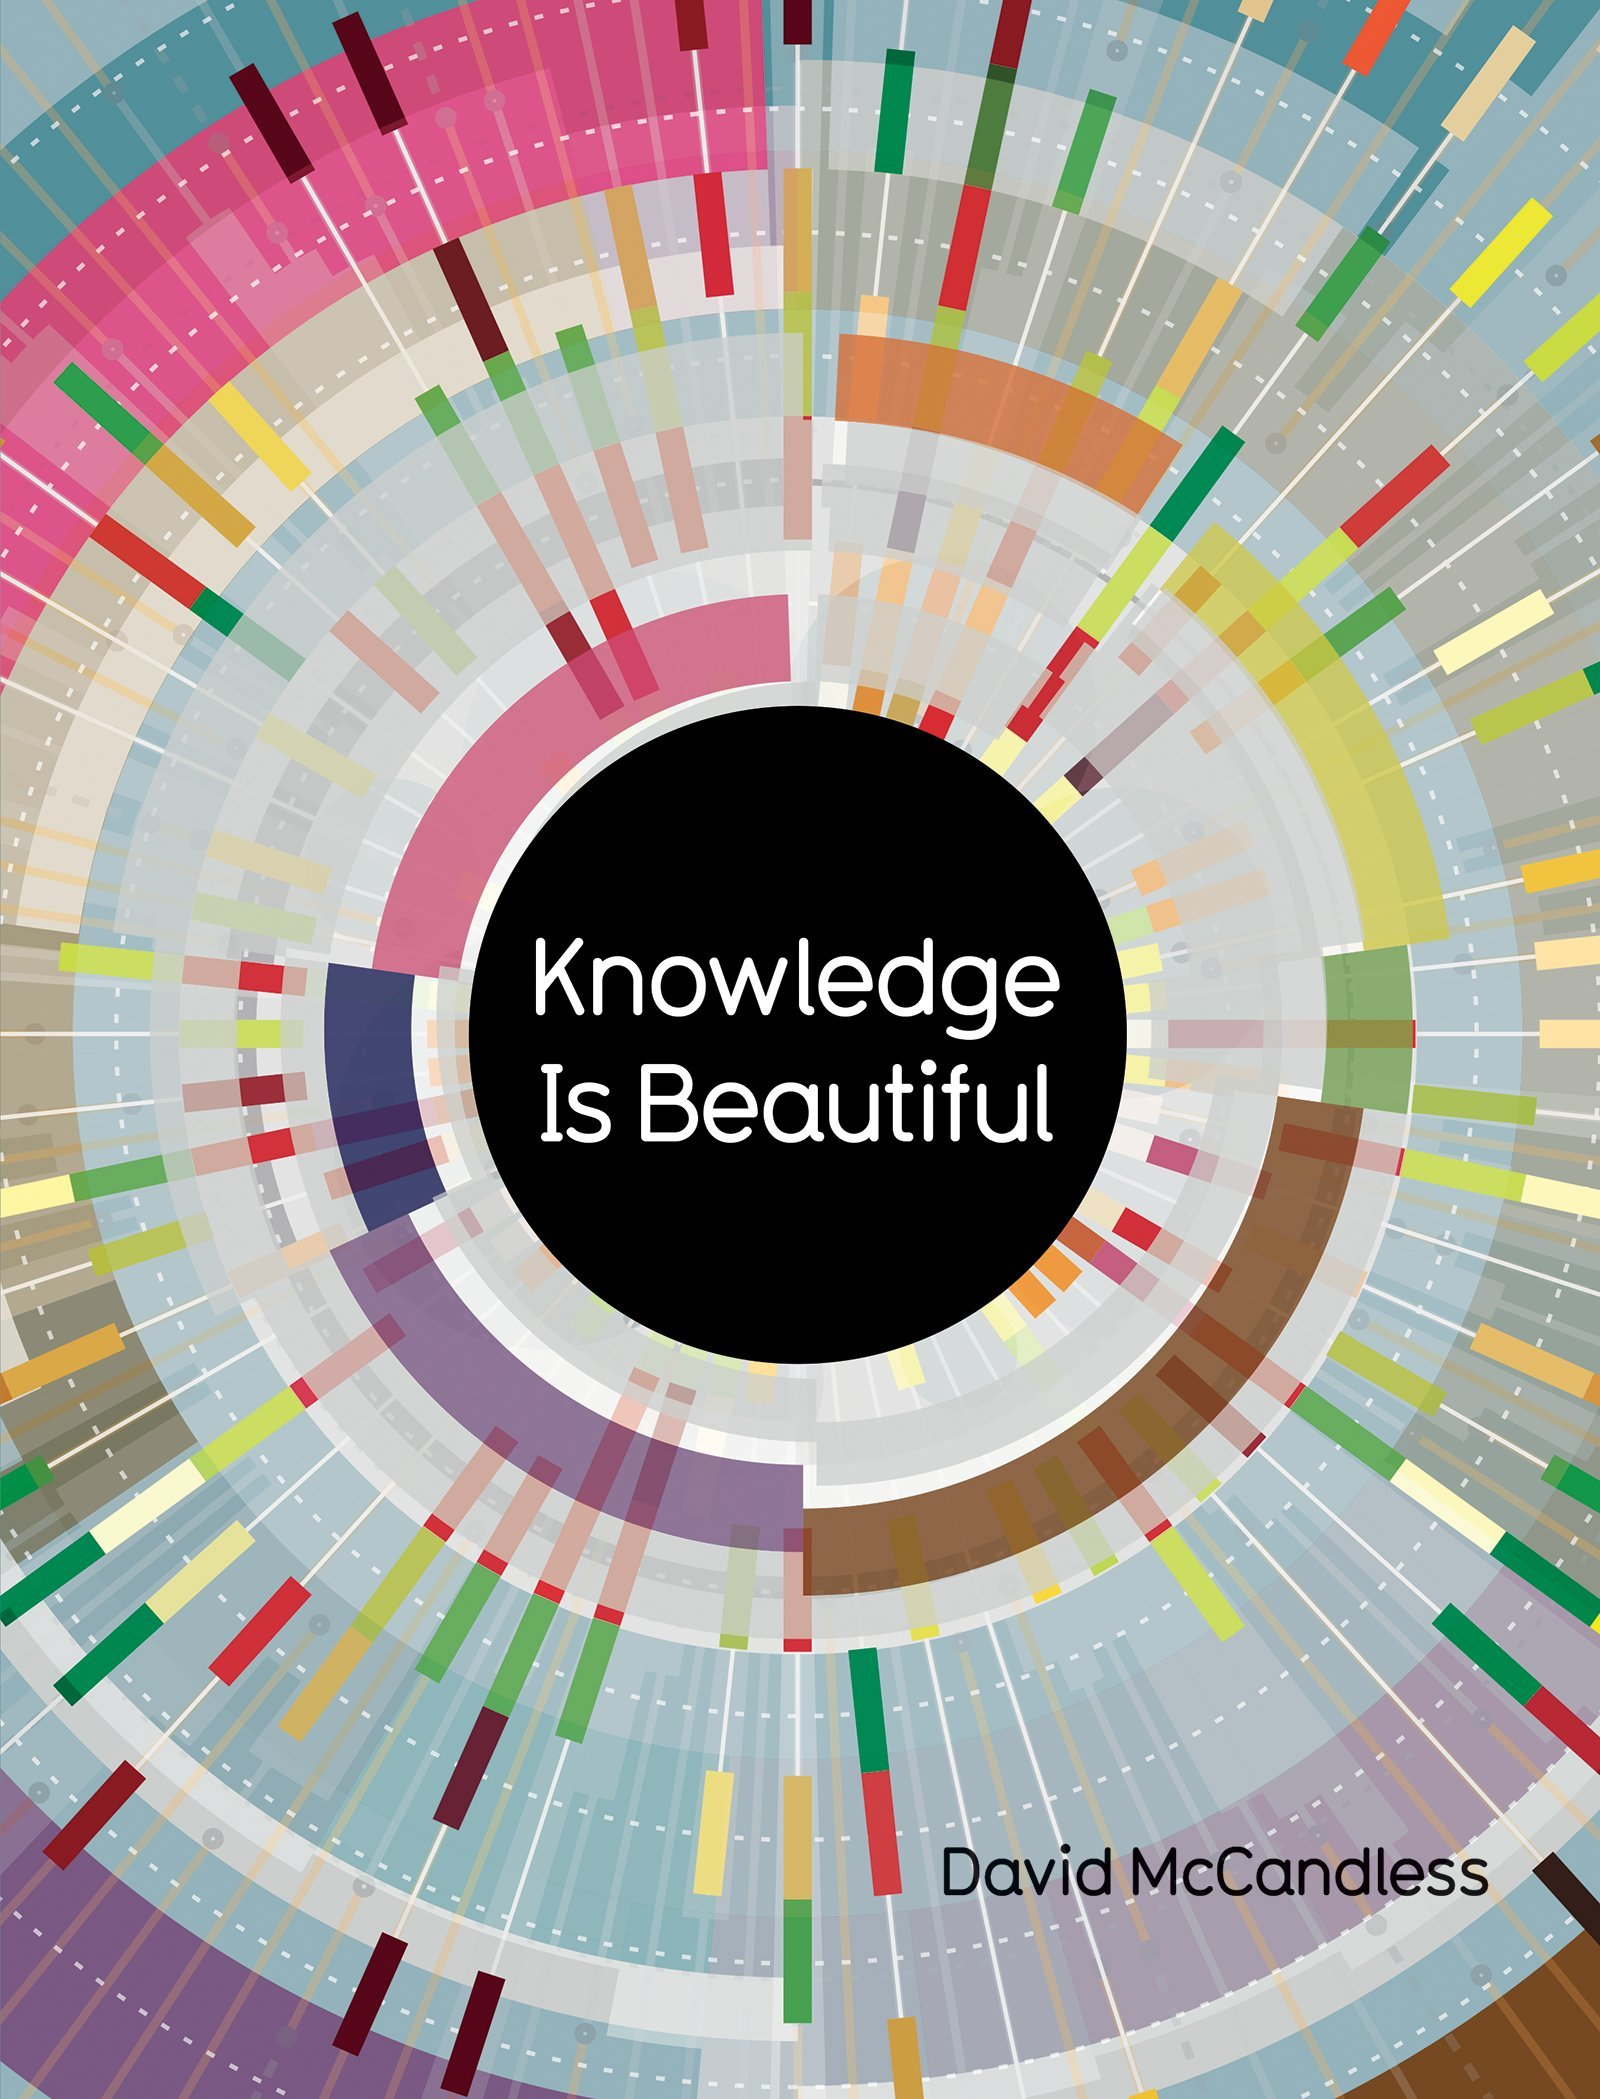 Knowledge Is Beautiful book by David McCandless